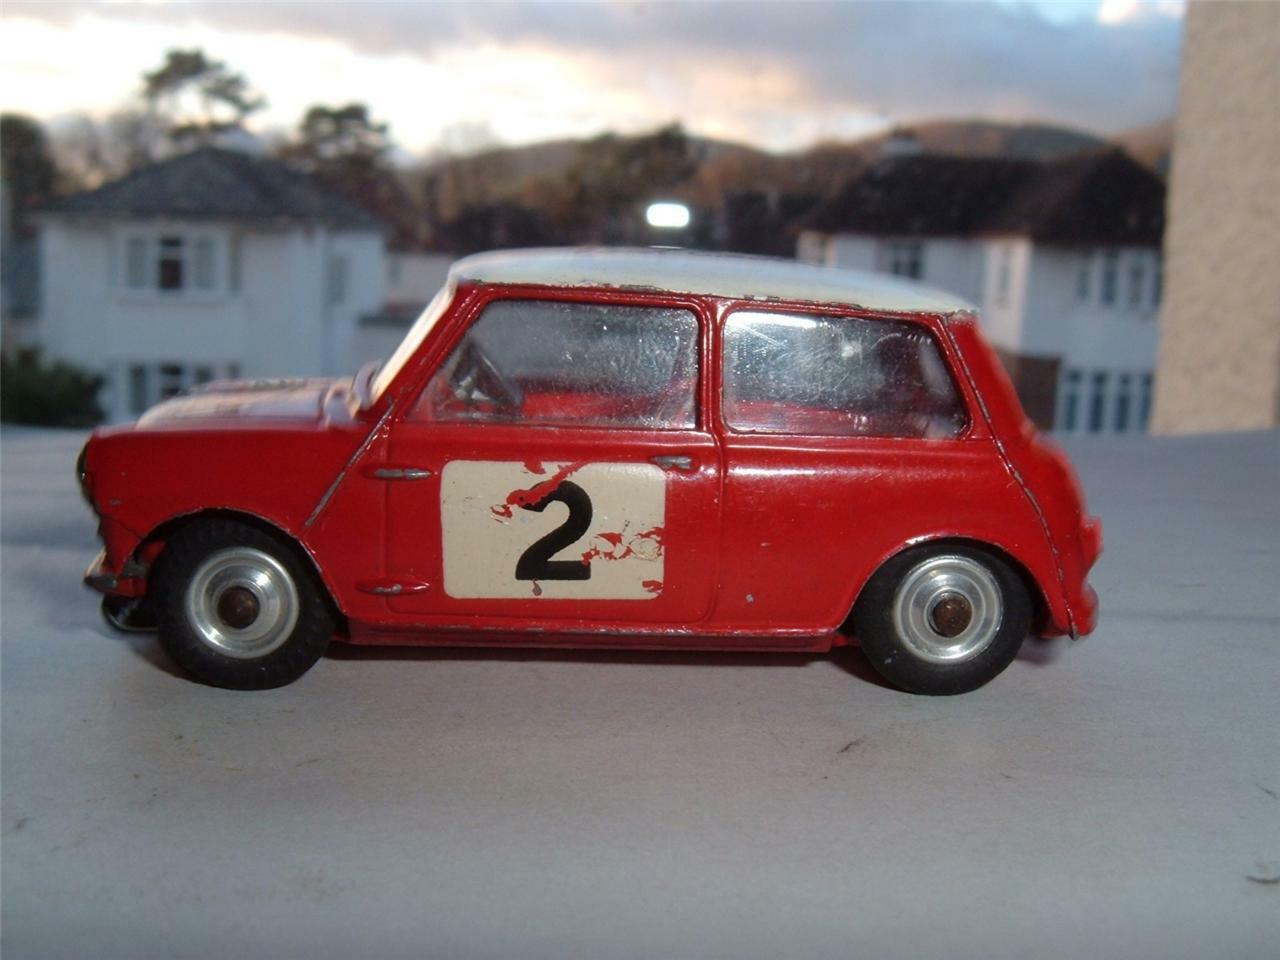 CORGI TOY 321 1966 MONTE CARLO RALLYE BMC MINI COOPER S TIMO MAKINEN PAUL EASTER